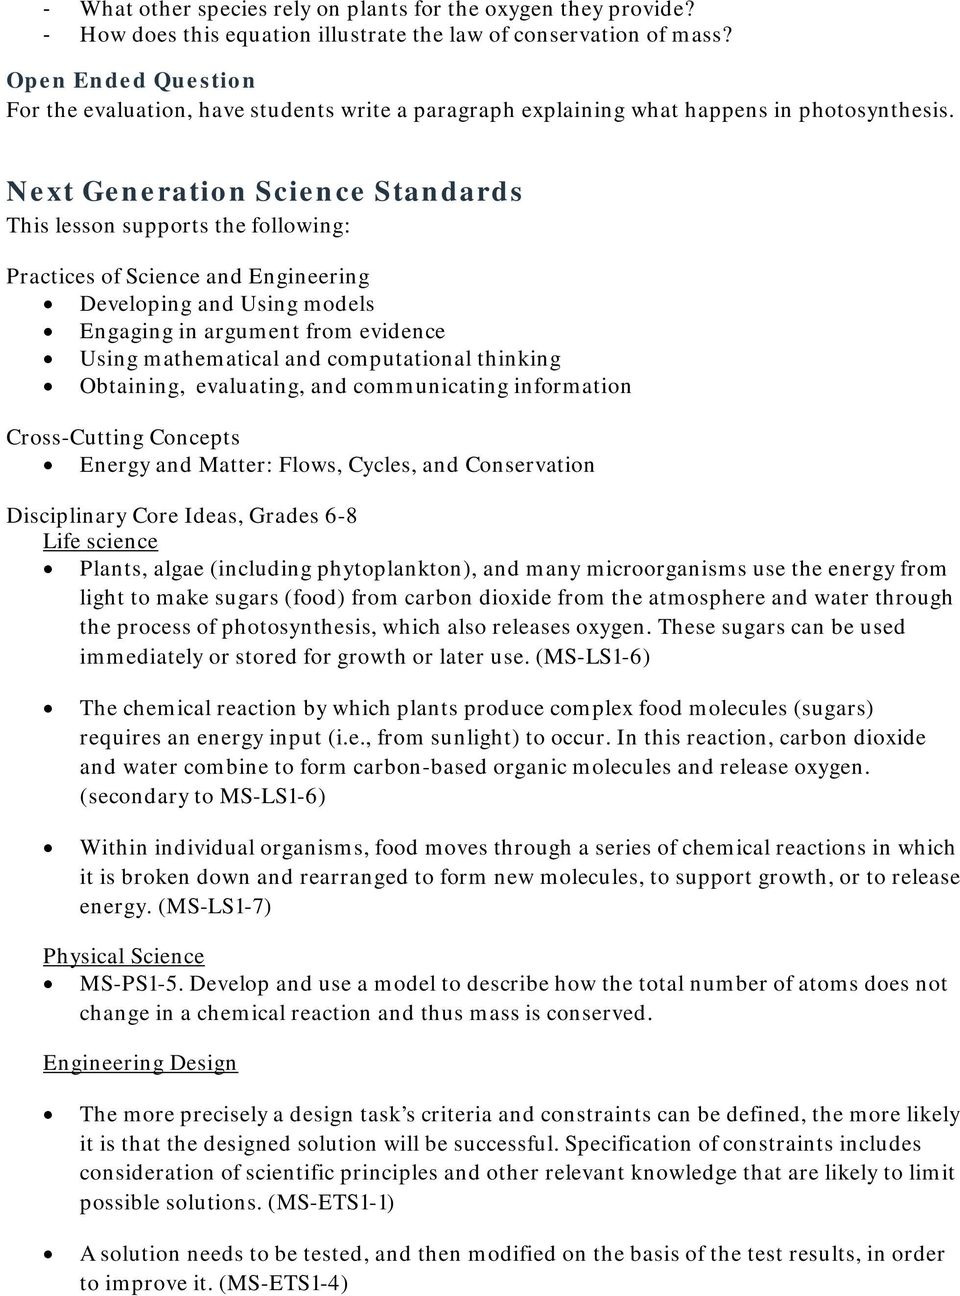 Next Generation Science Standards This lesson supports the following: Practices of Science and Engineering Developing and Using models Engaging in argument from evidence Using mathematical and